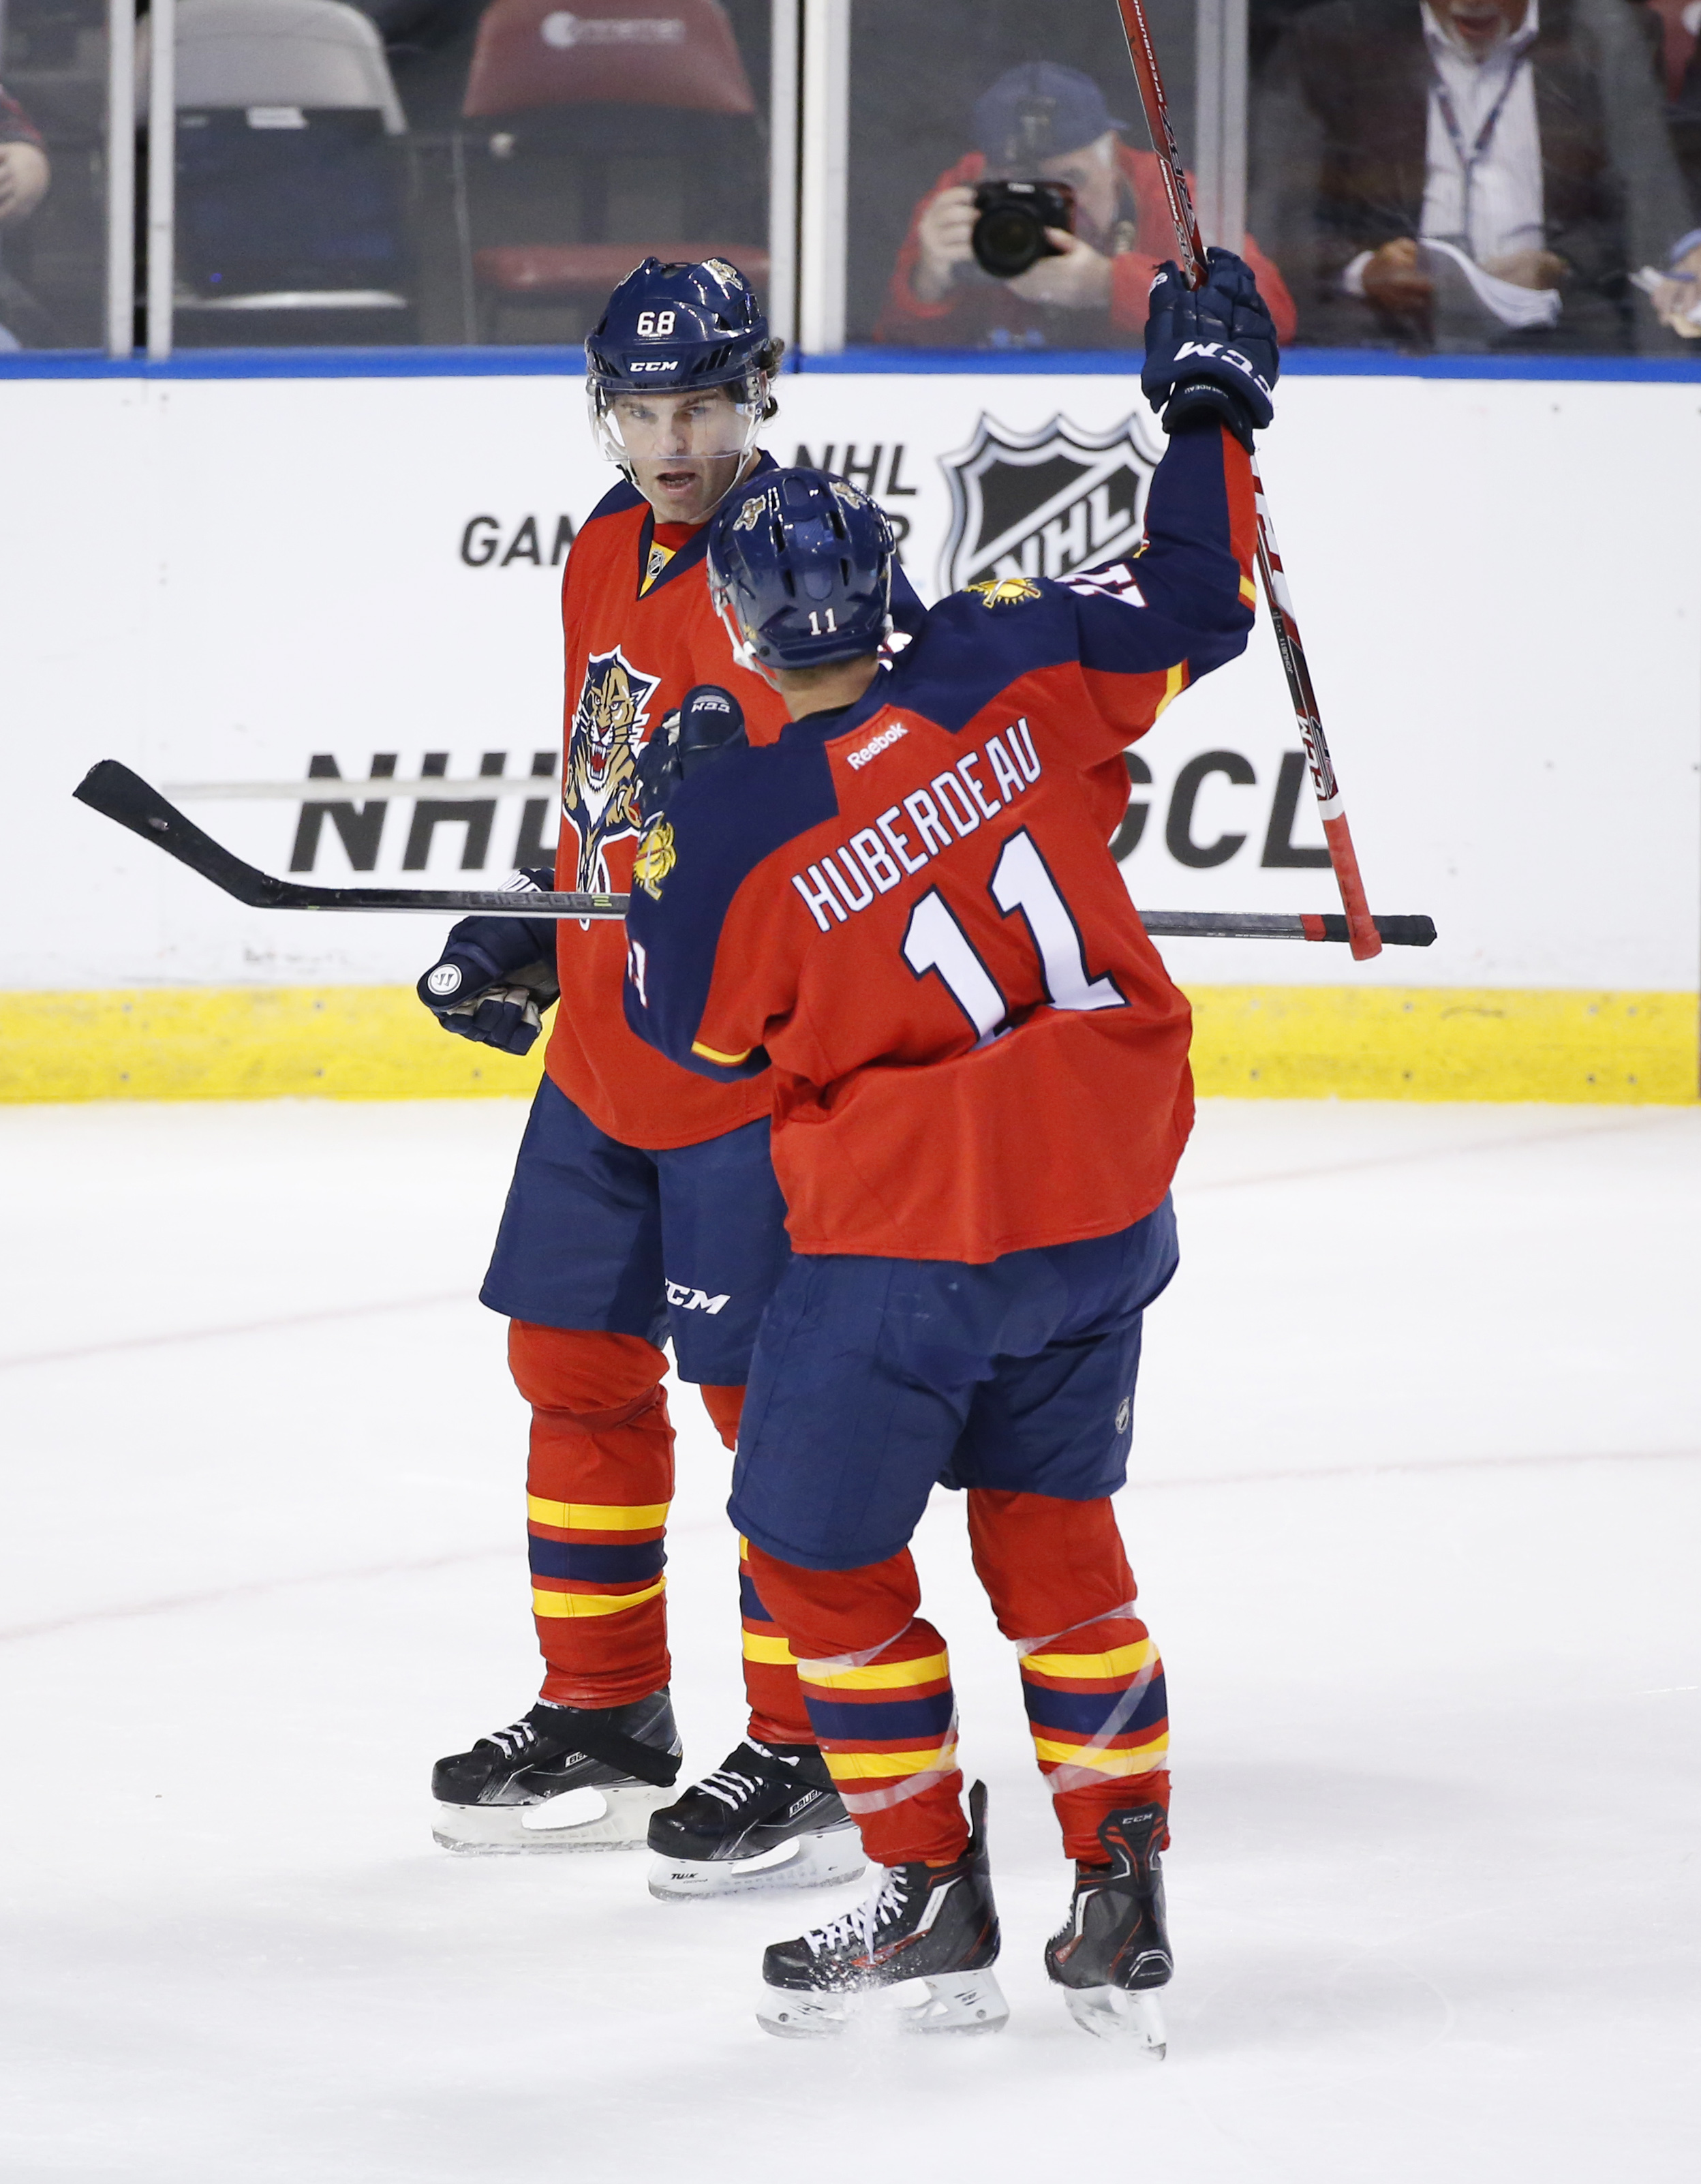 Florida Panthers right wing Jaromir Jagr (68) celebrates with center Jonathan Huberdeau (11) after Jagr scored a goal during the first period of an NHL hockey game against the Buffalo Sabres, Thursday, Oct. 15, 2015 in Sunrise, Fla. (AP Photo/Wilfredo Lee